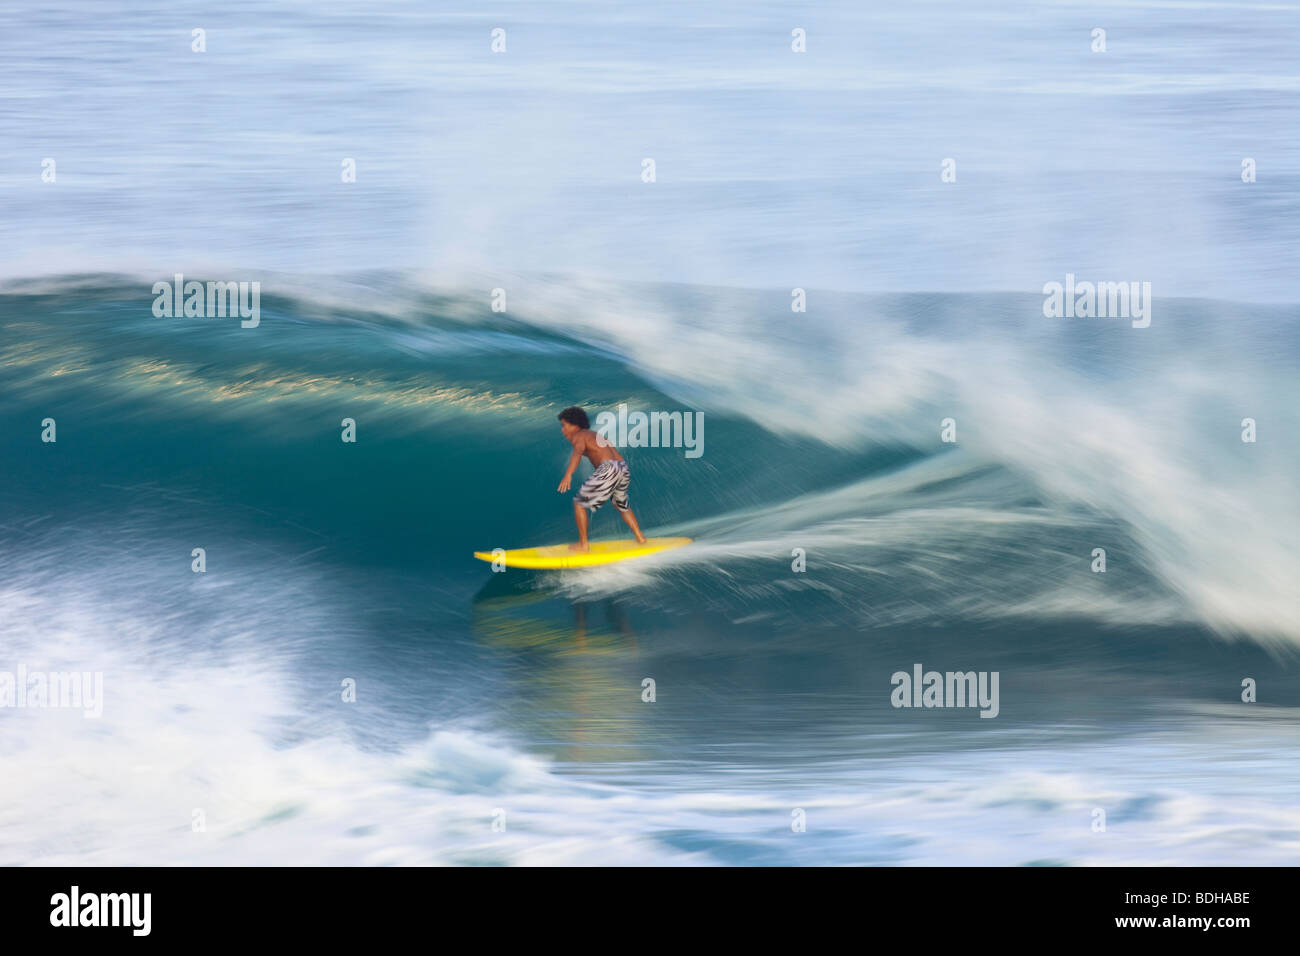 Surfeur hawaien